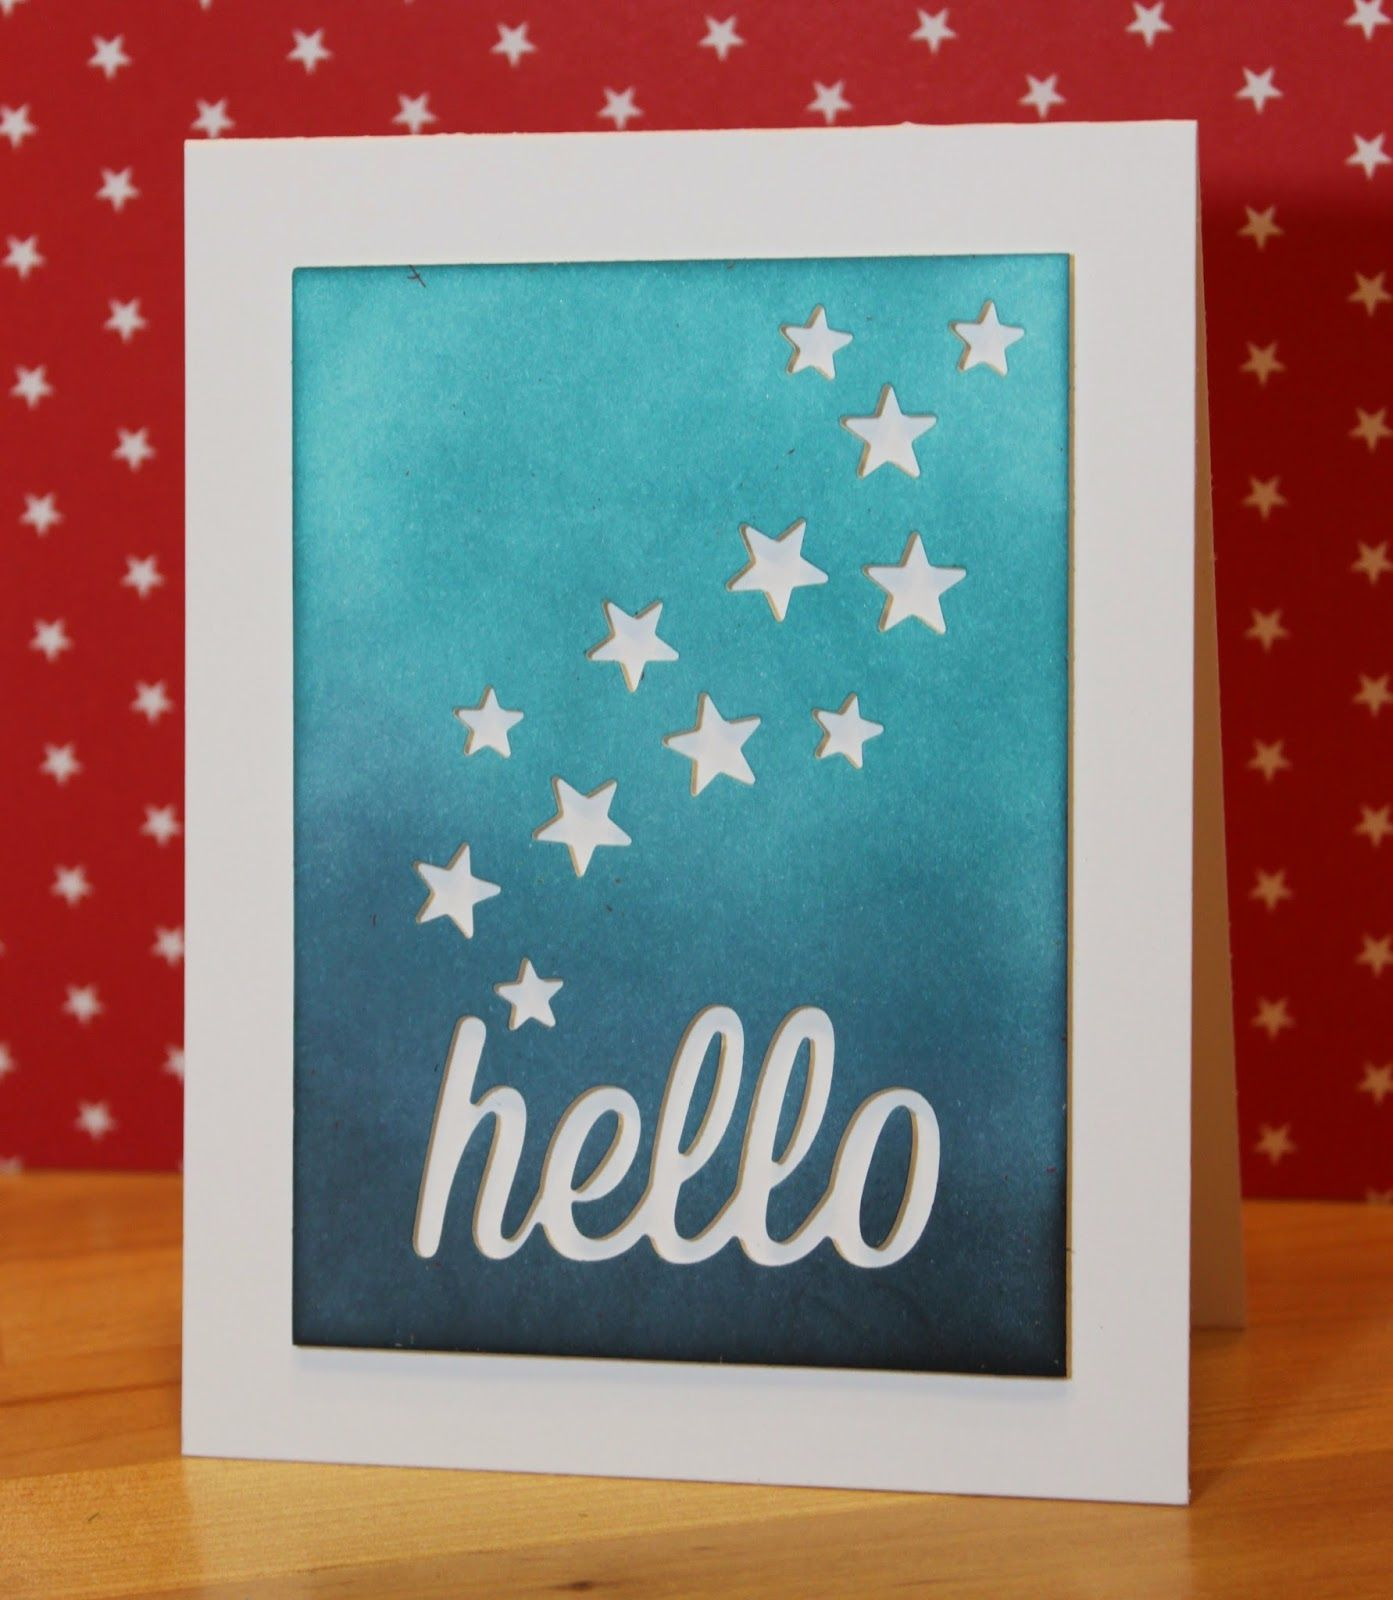 Handmade greeting card from whatus next panel sponged in ombré